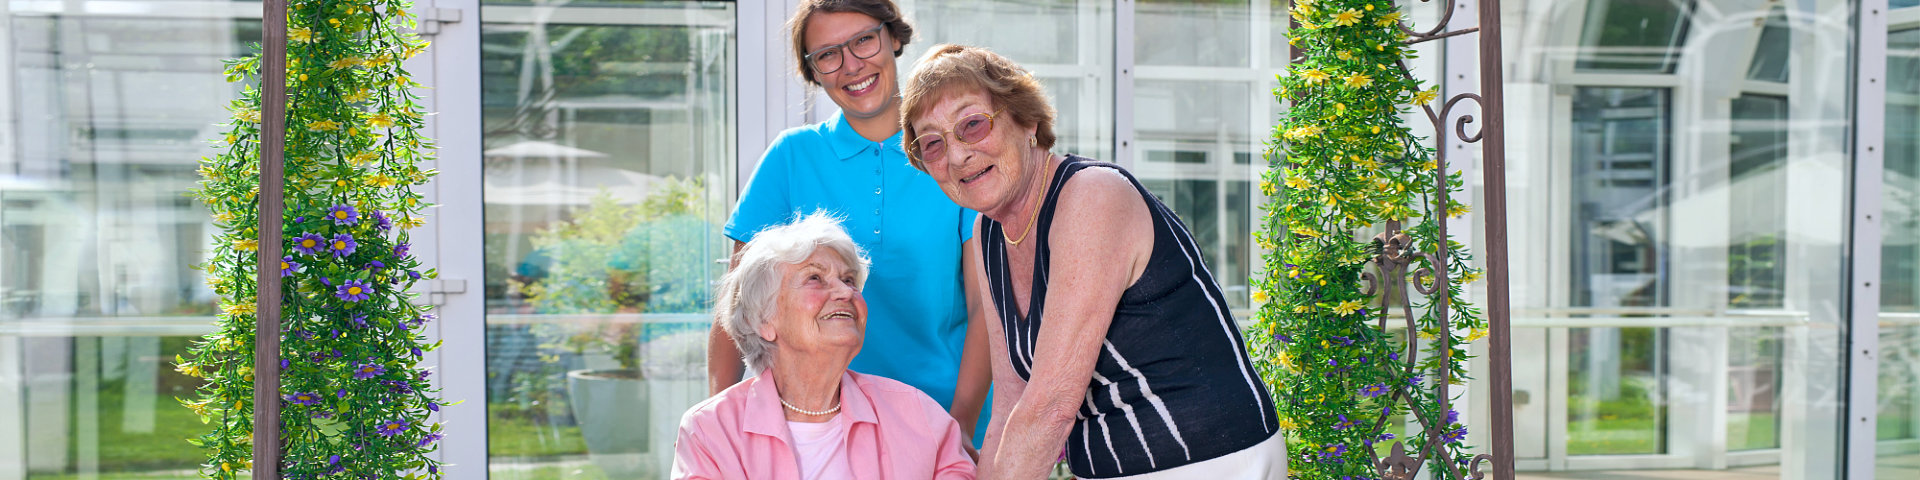 happy seniors with caregiver